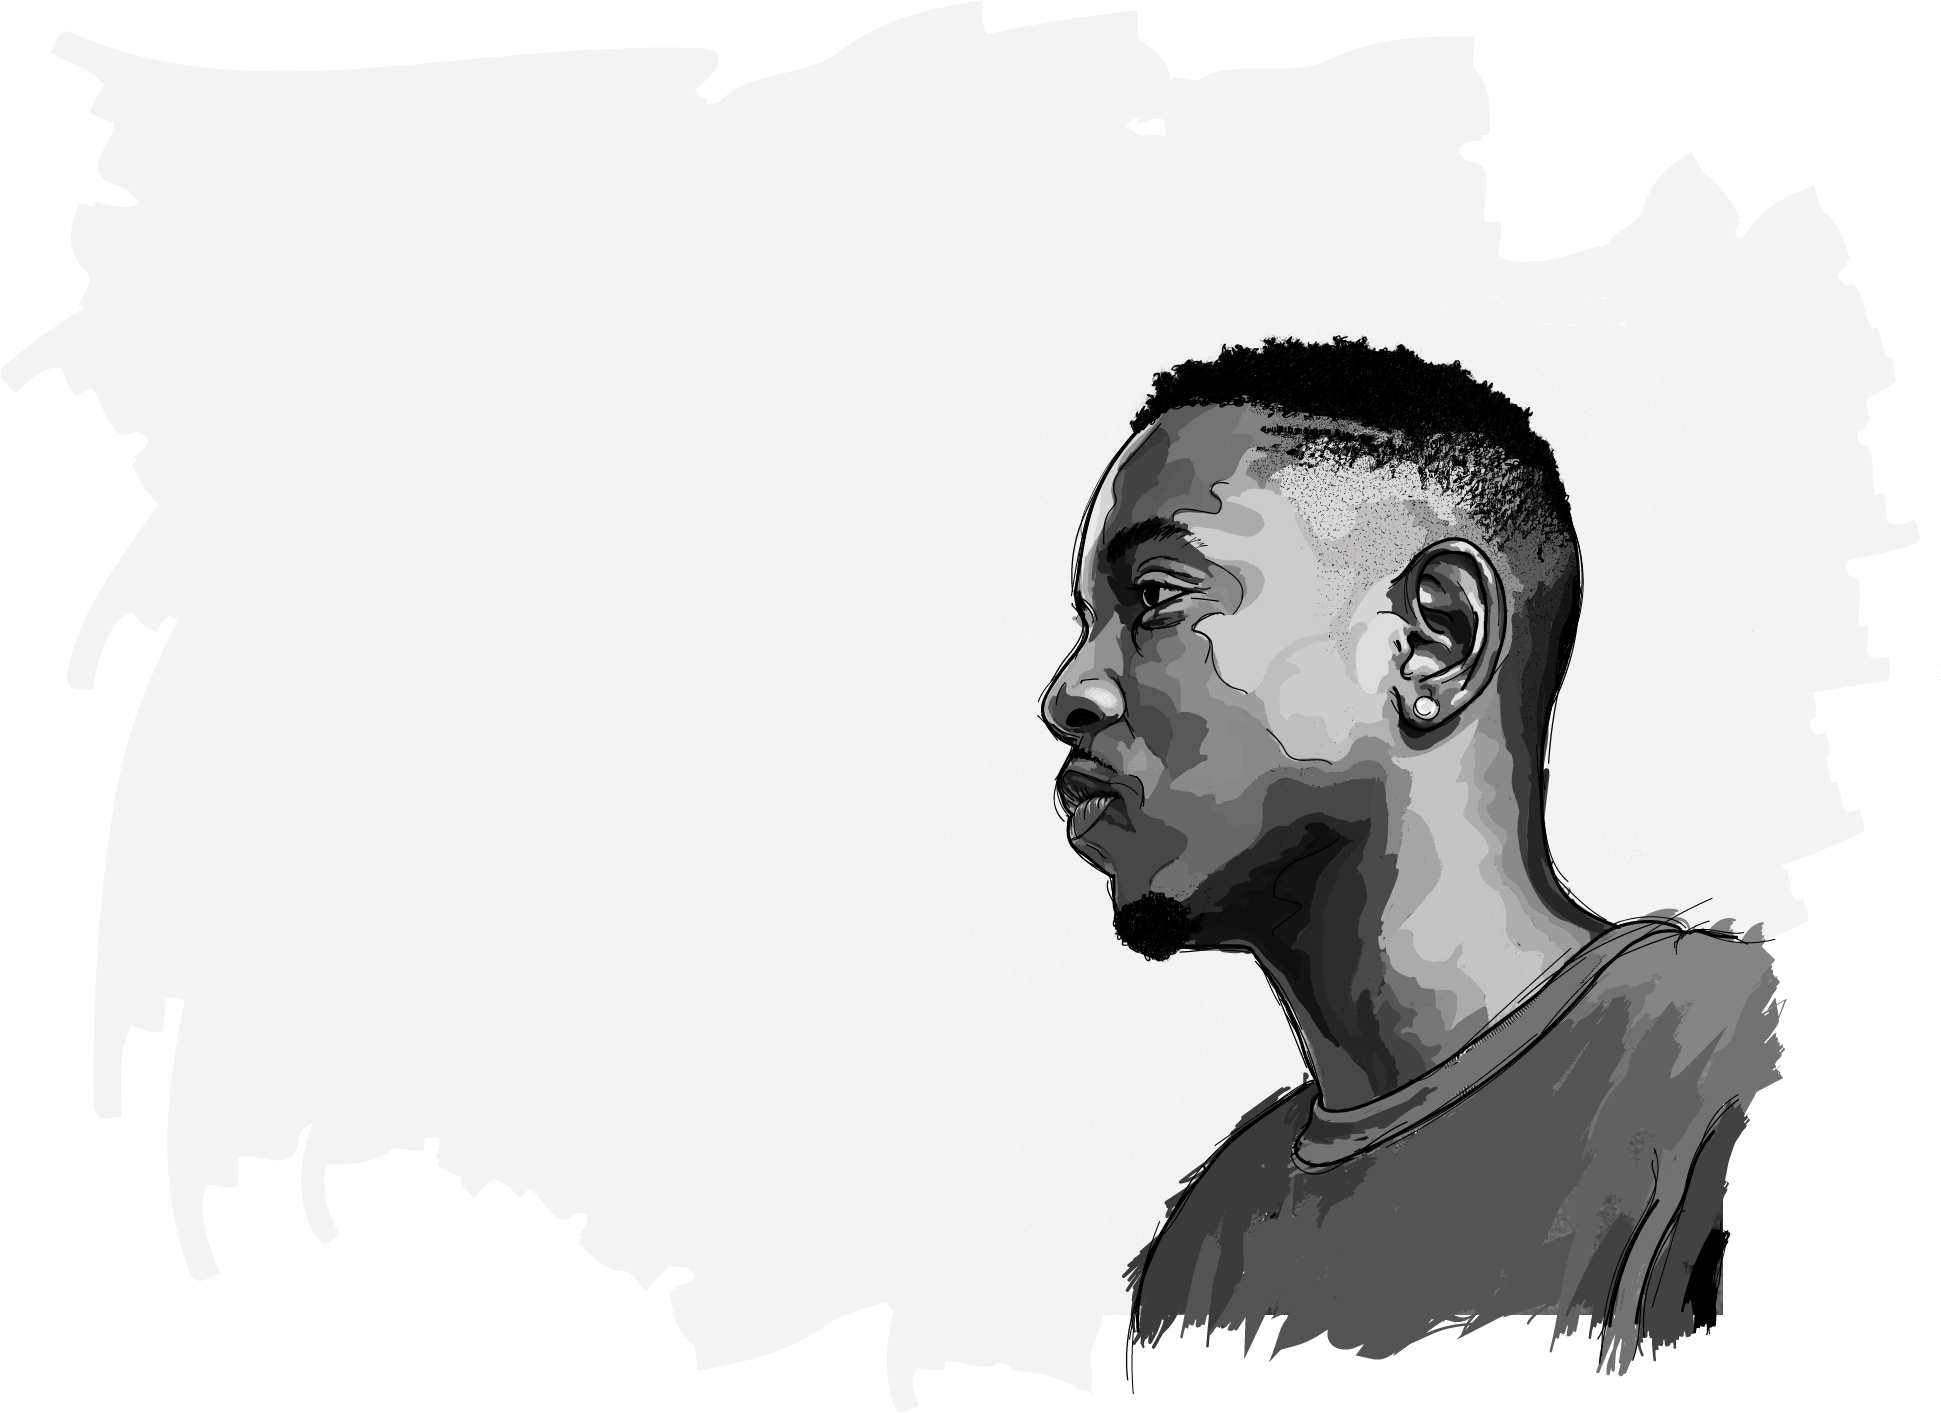 png Rapper drawings tumblr rappers. Drawing mirror realistic